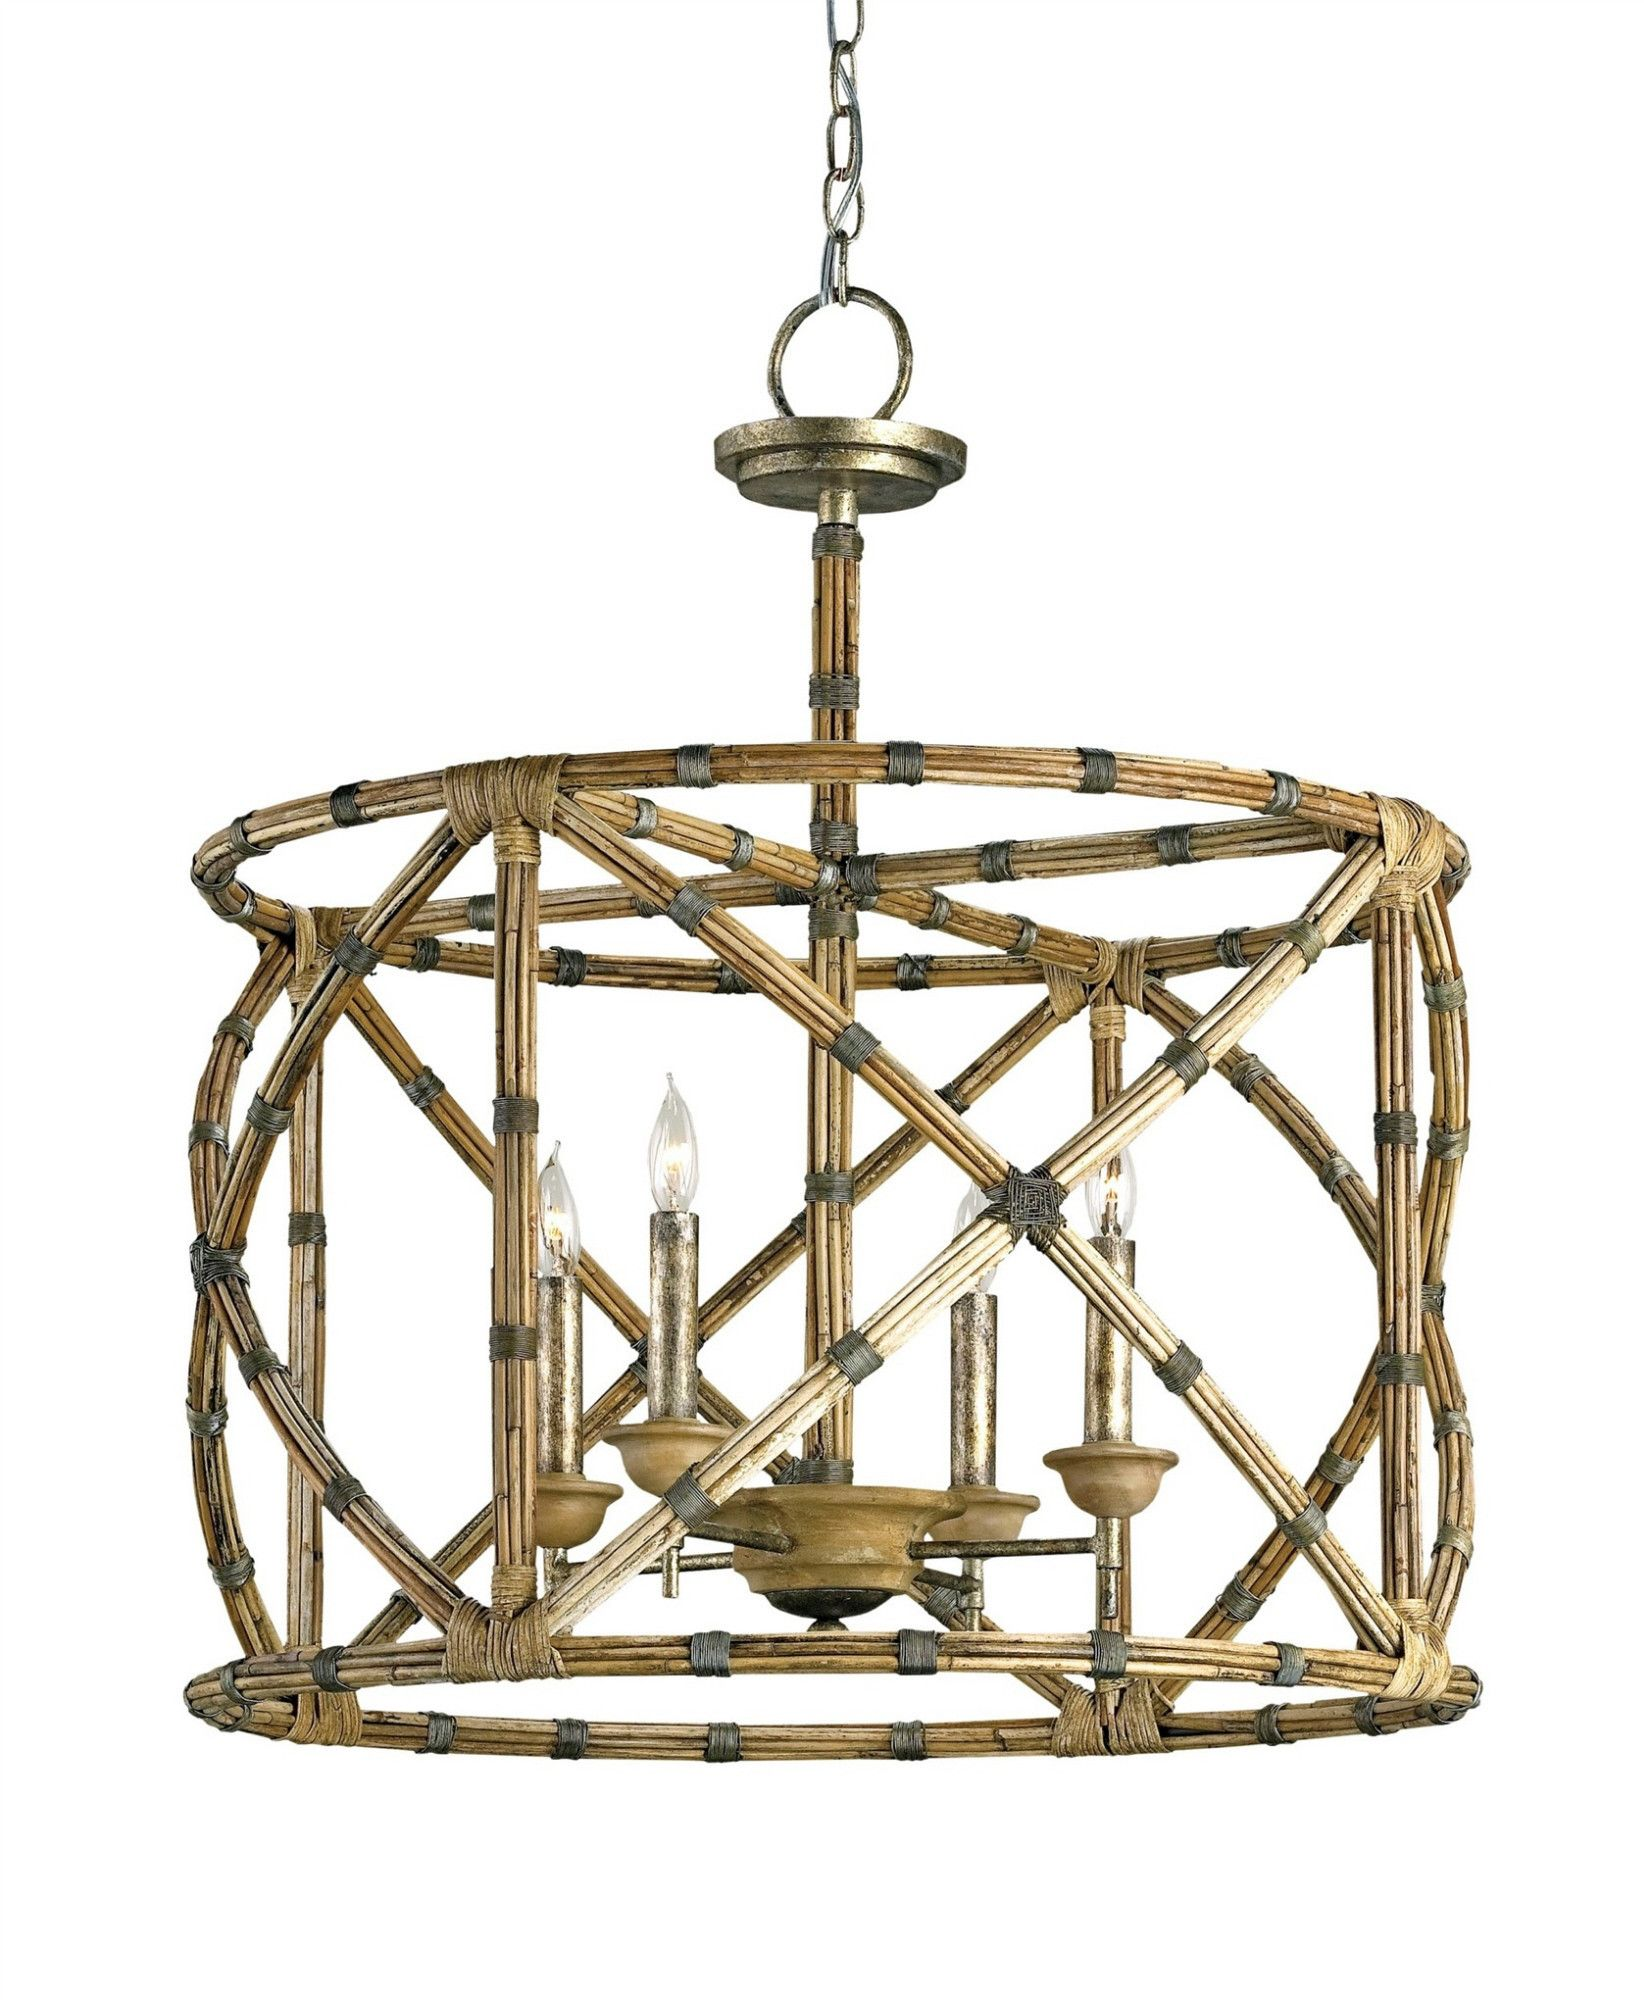 Palm beach lantern design by currey company palm beach palm and currey company palm beach lantern chandeliers lighting tuvalu coastal home furnishings aloadofball Gallery